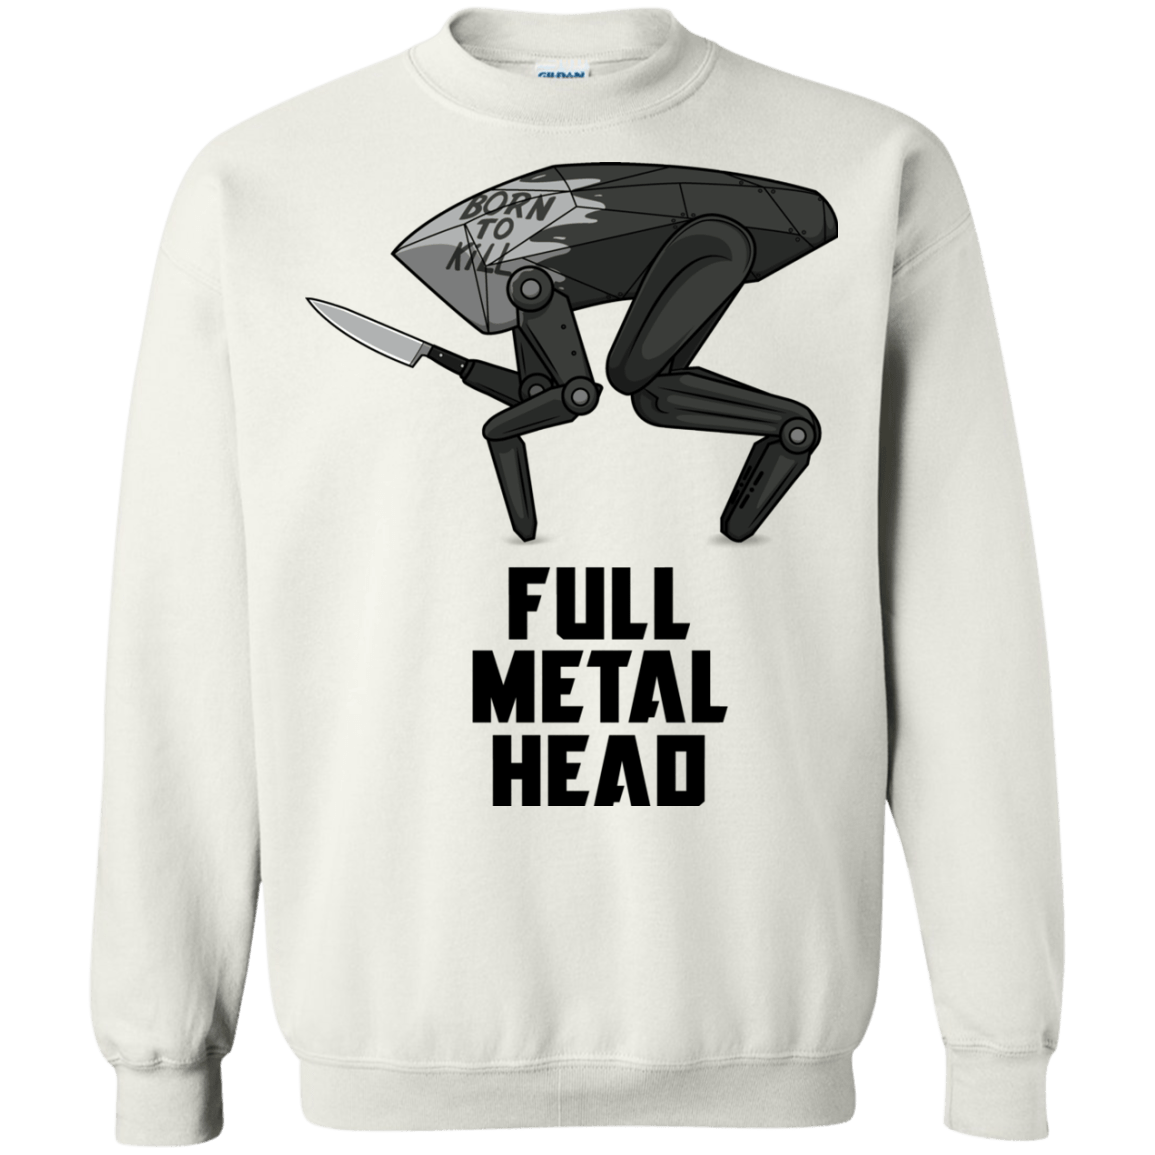 Sweatshirts White / S Full Metal Head Crewneck Sweatshirt